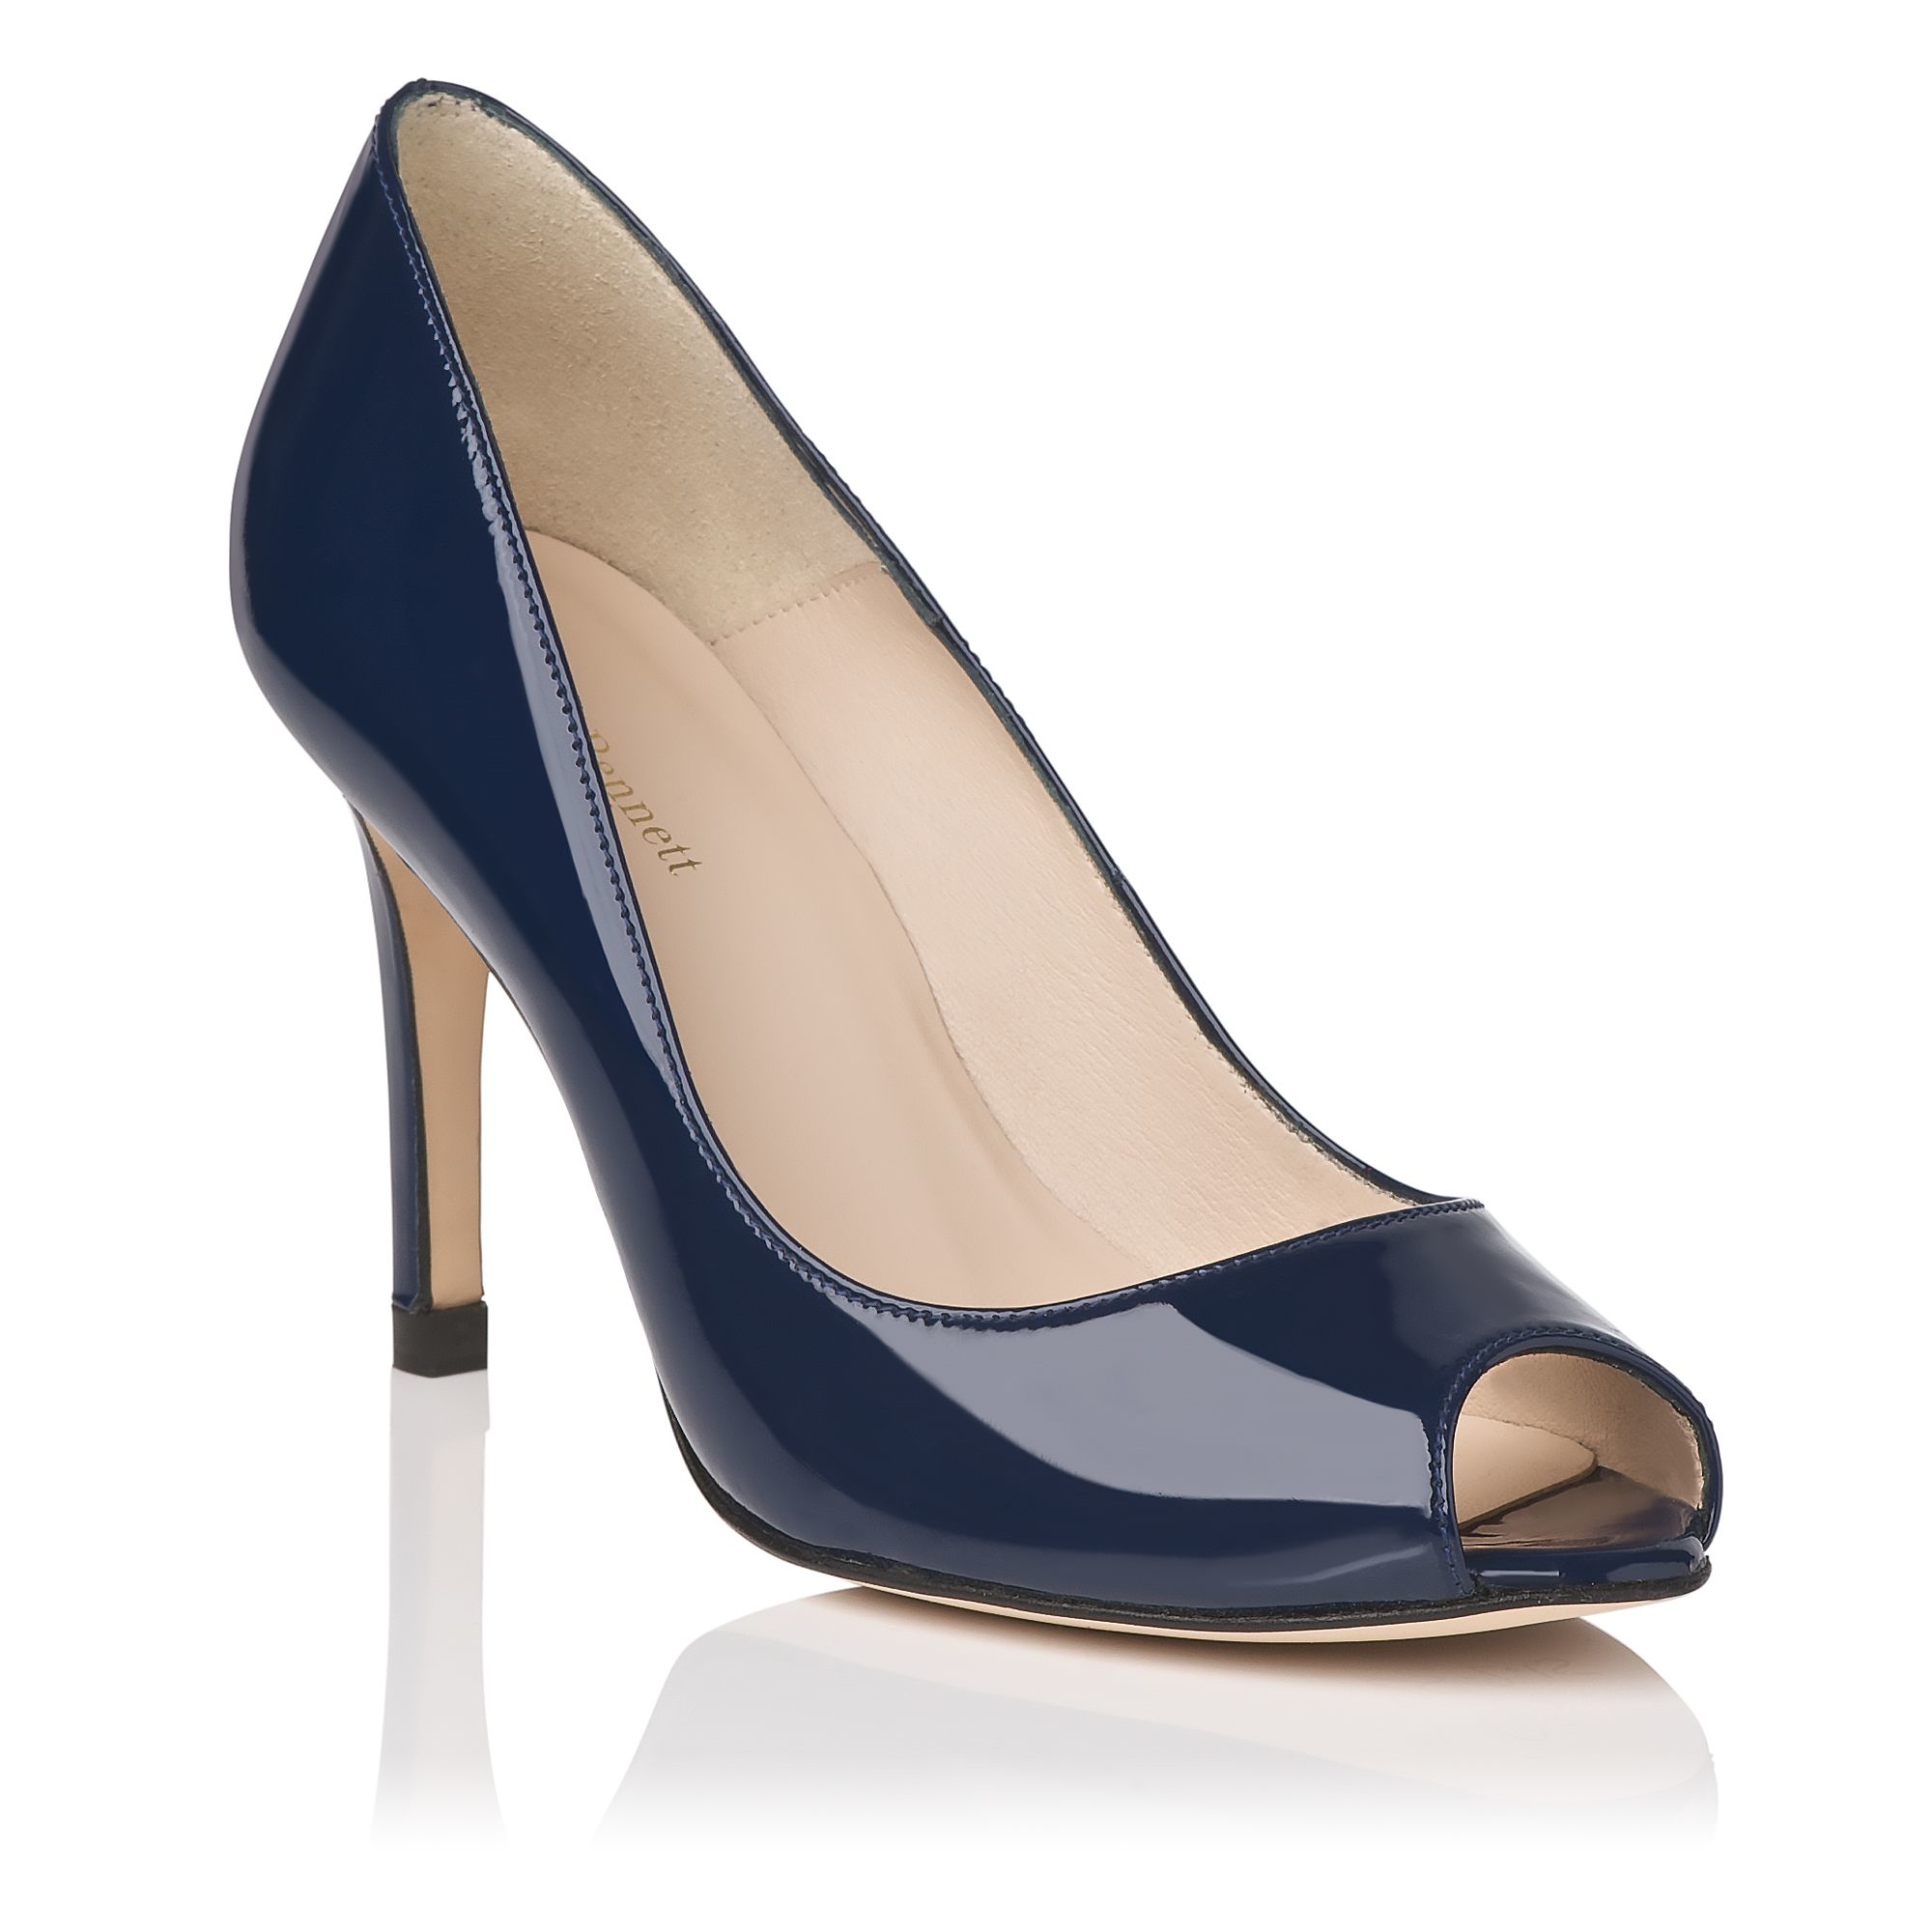 L.K. Bennett Patent Leather Peep-Toe Pumps nicekicks for sale cheap sale with paypal lowest price best wholesale for sale cheap price low shipping fee Frz5U